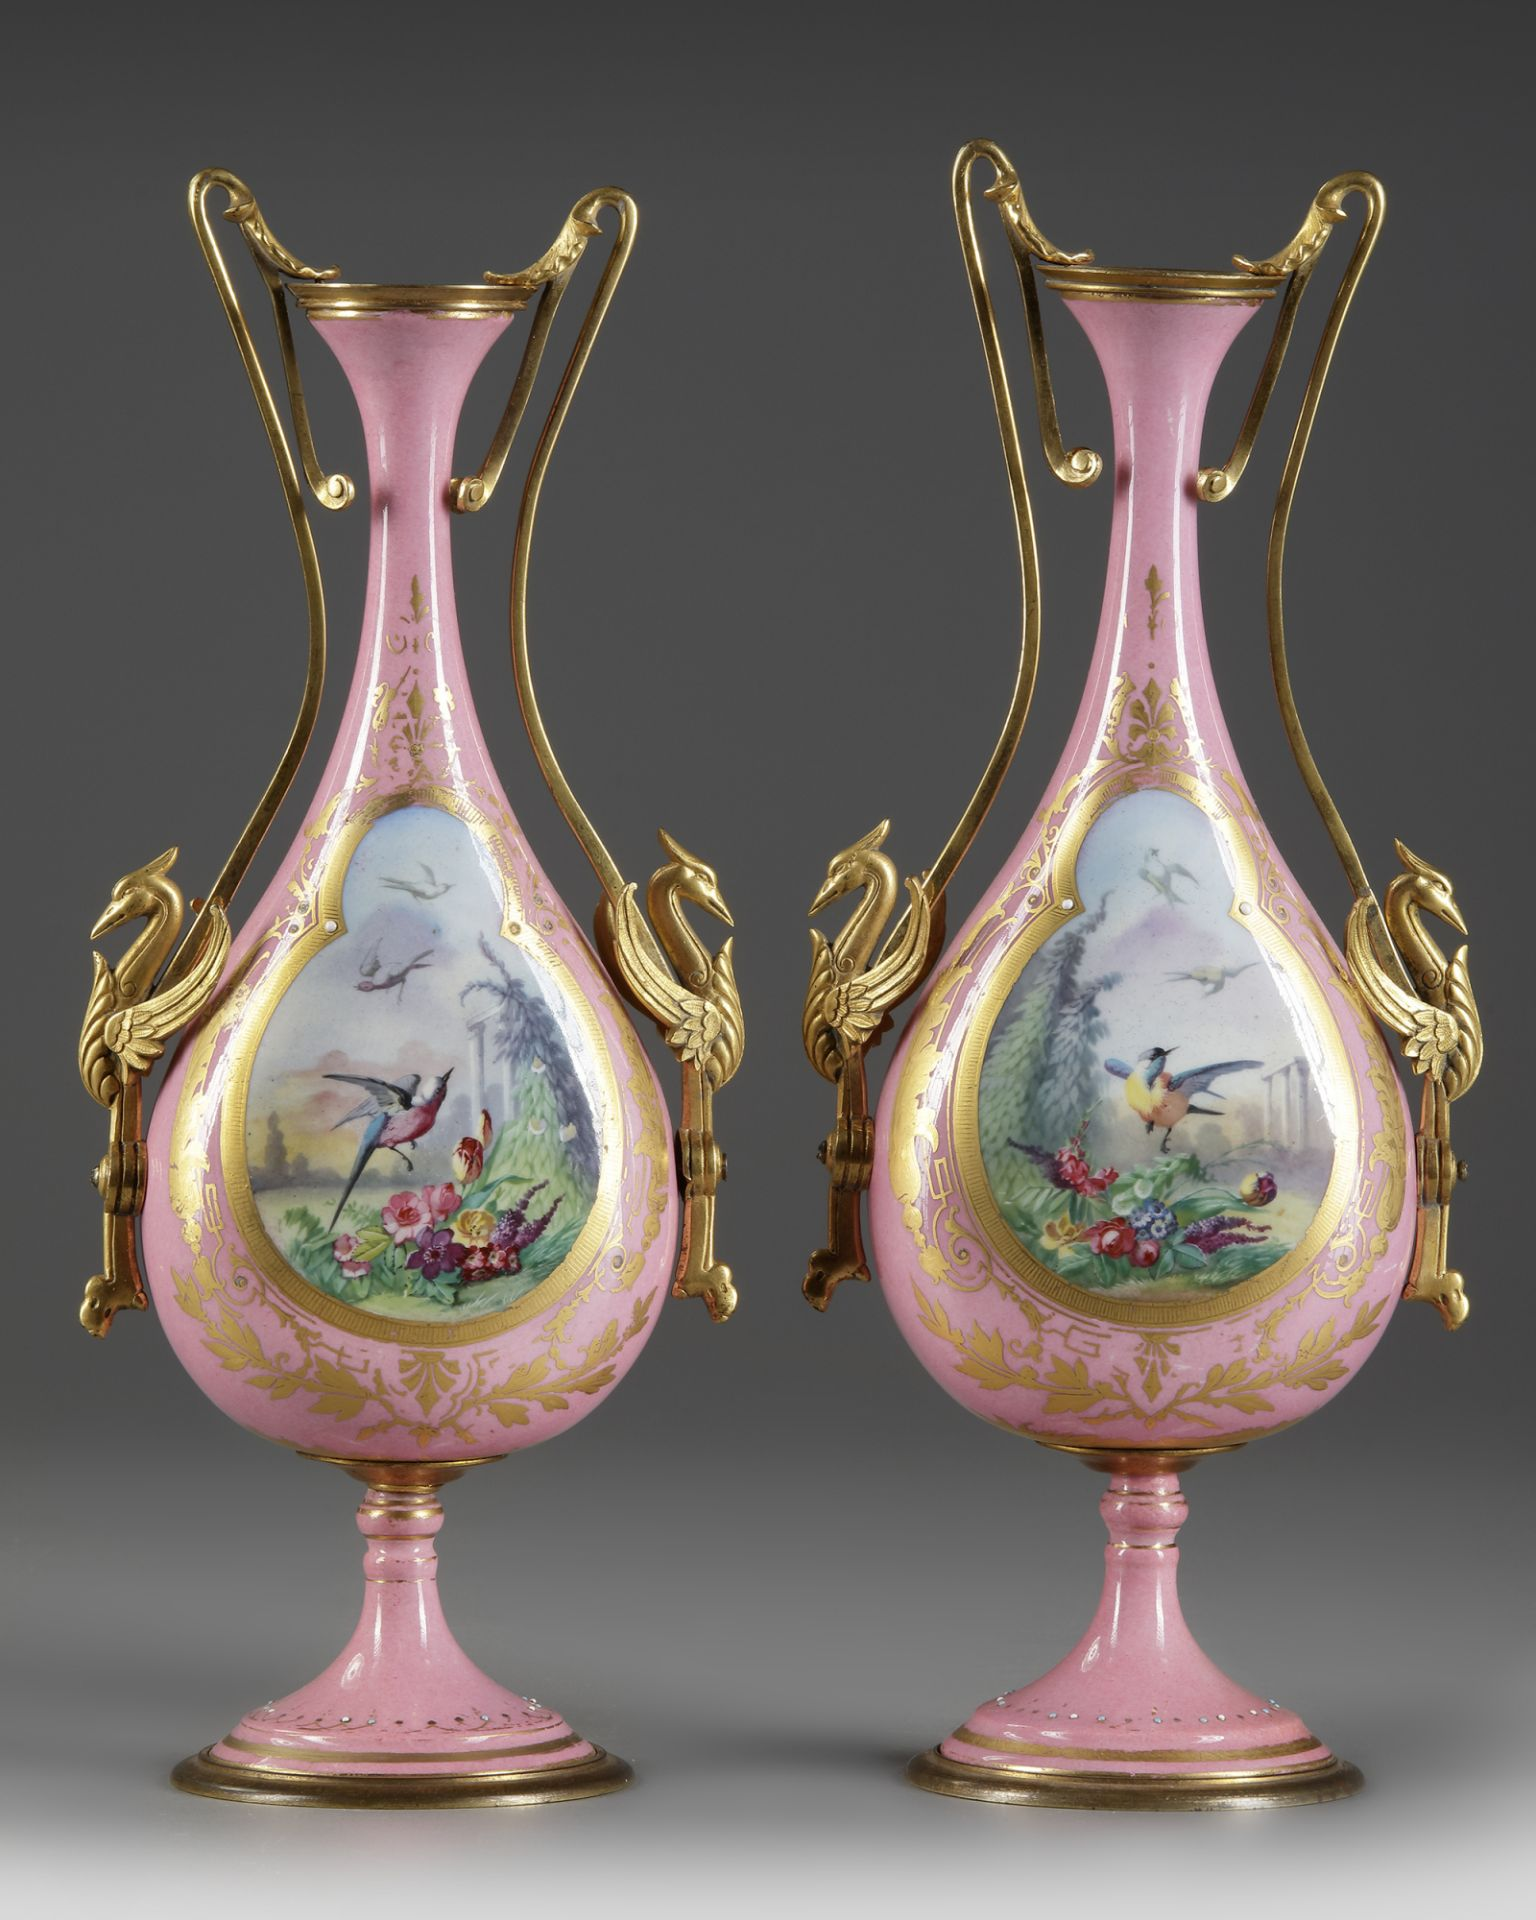 A PAIR OF FRENCH PINK SEVRES VASES, LATE 19TH CENTURY - Image 2 of 4